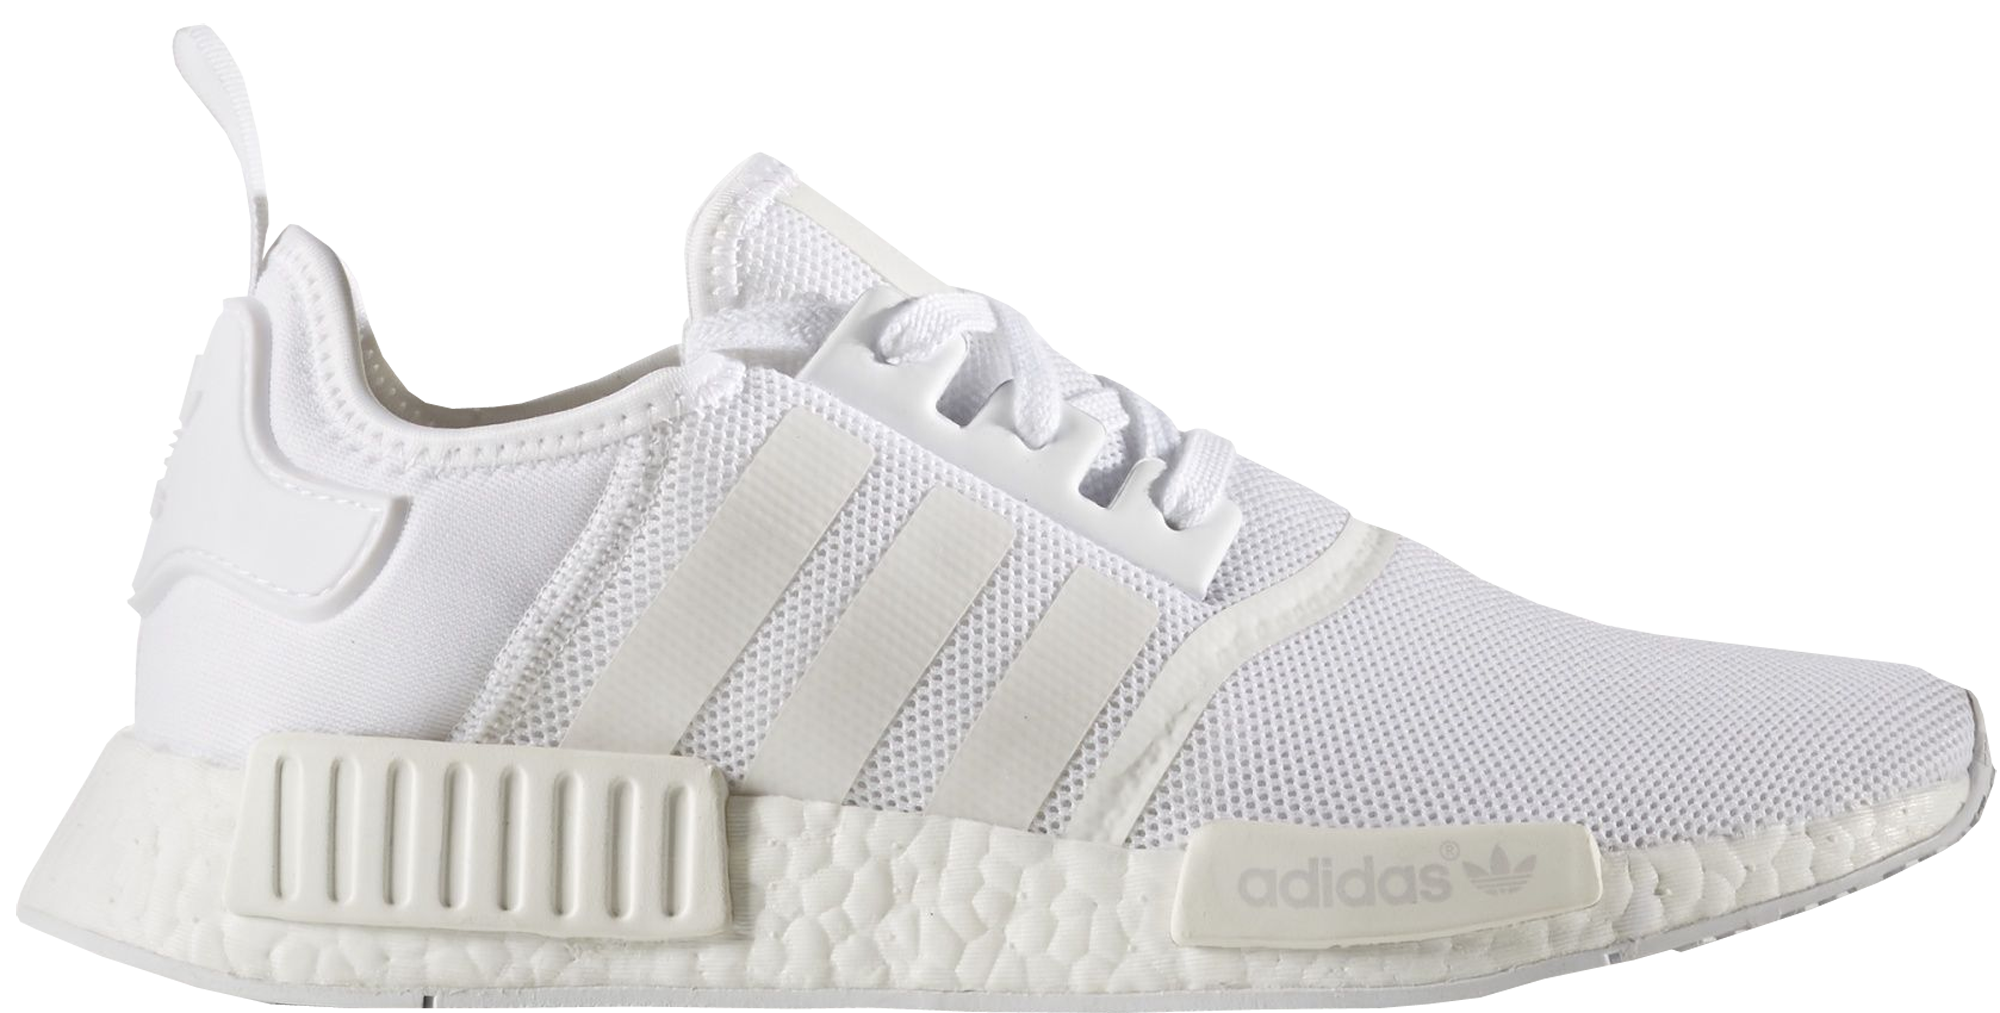 adidas nmd r1 triple white 2017. Black Bedroom Furniture Sets. Home Design Ideas